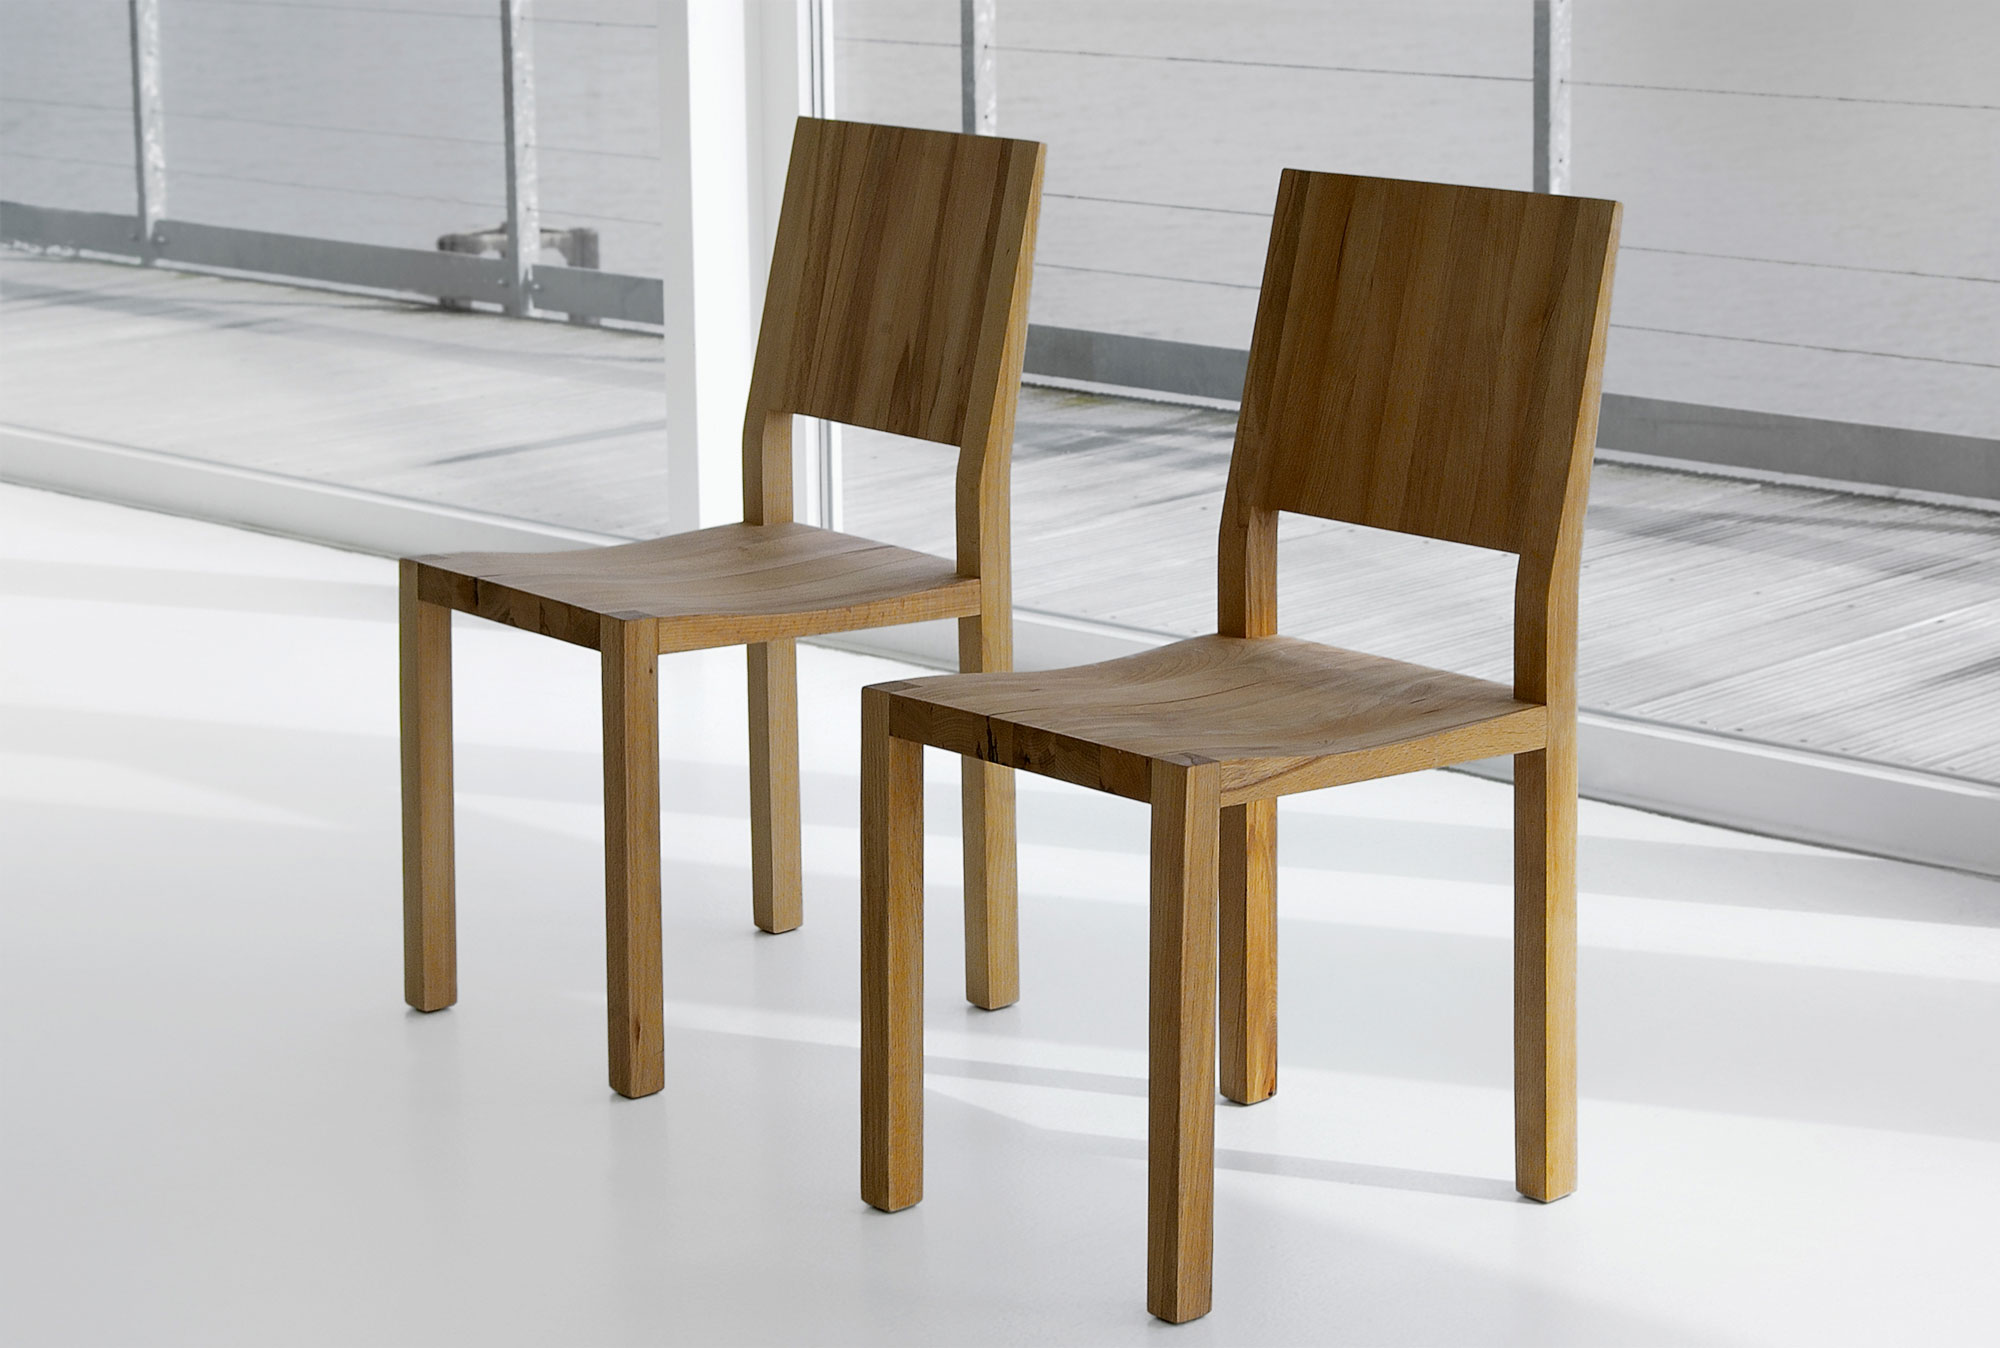 Solid Wood Chair TAU 1322 custom made in solid wood by vitamin design